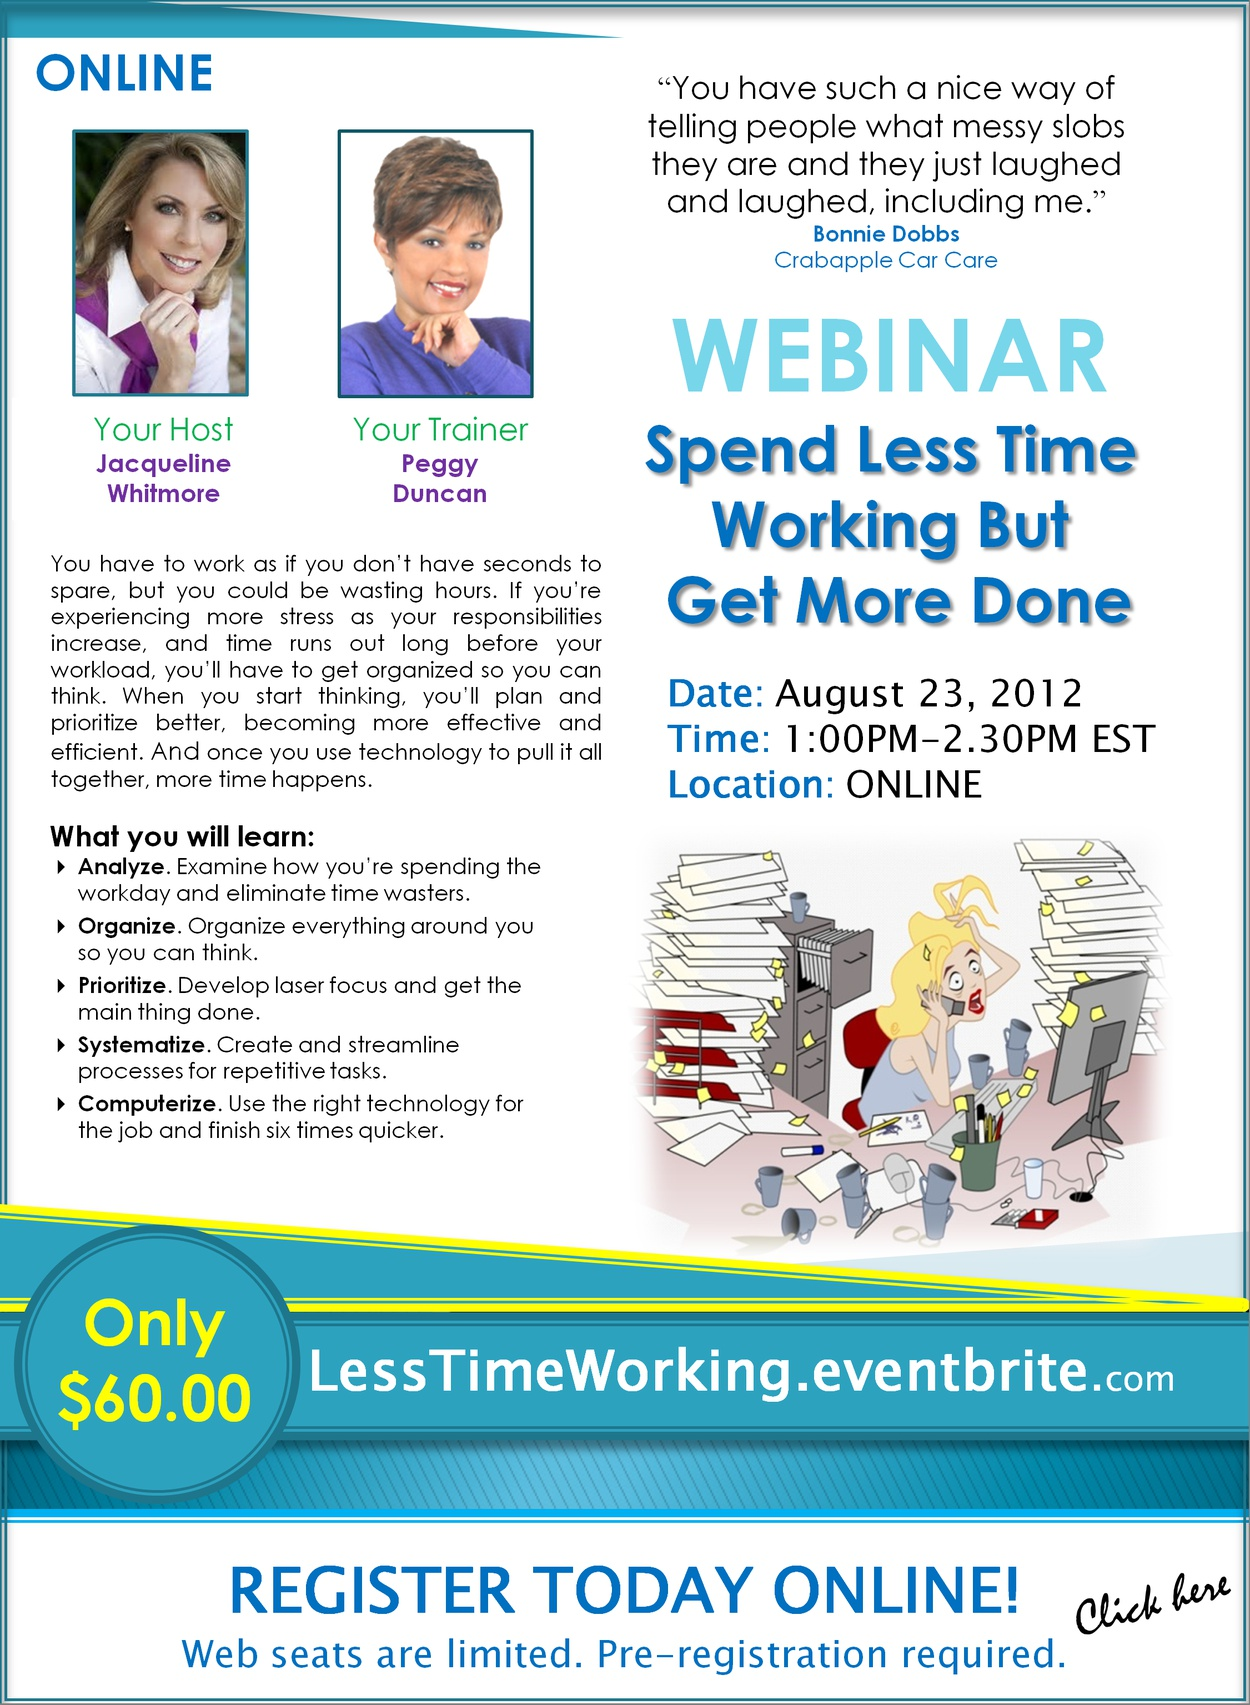 Webinar: Spend Less Time Working but Get More Done